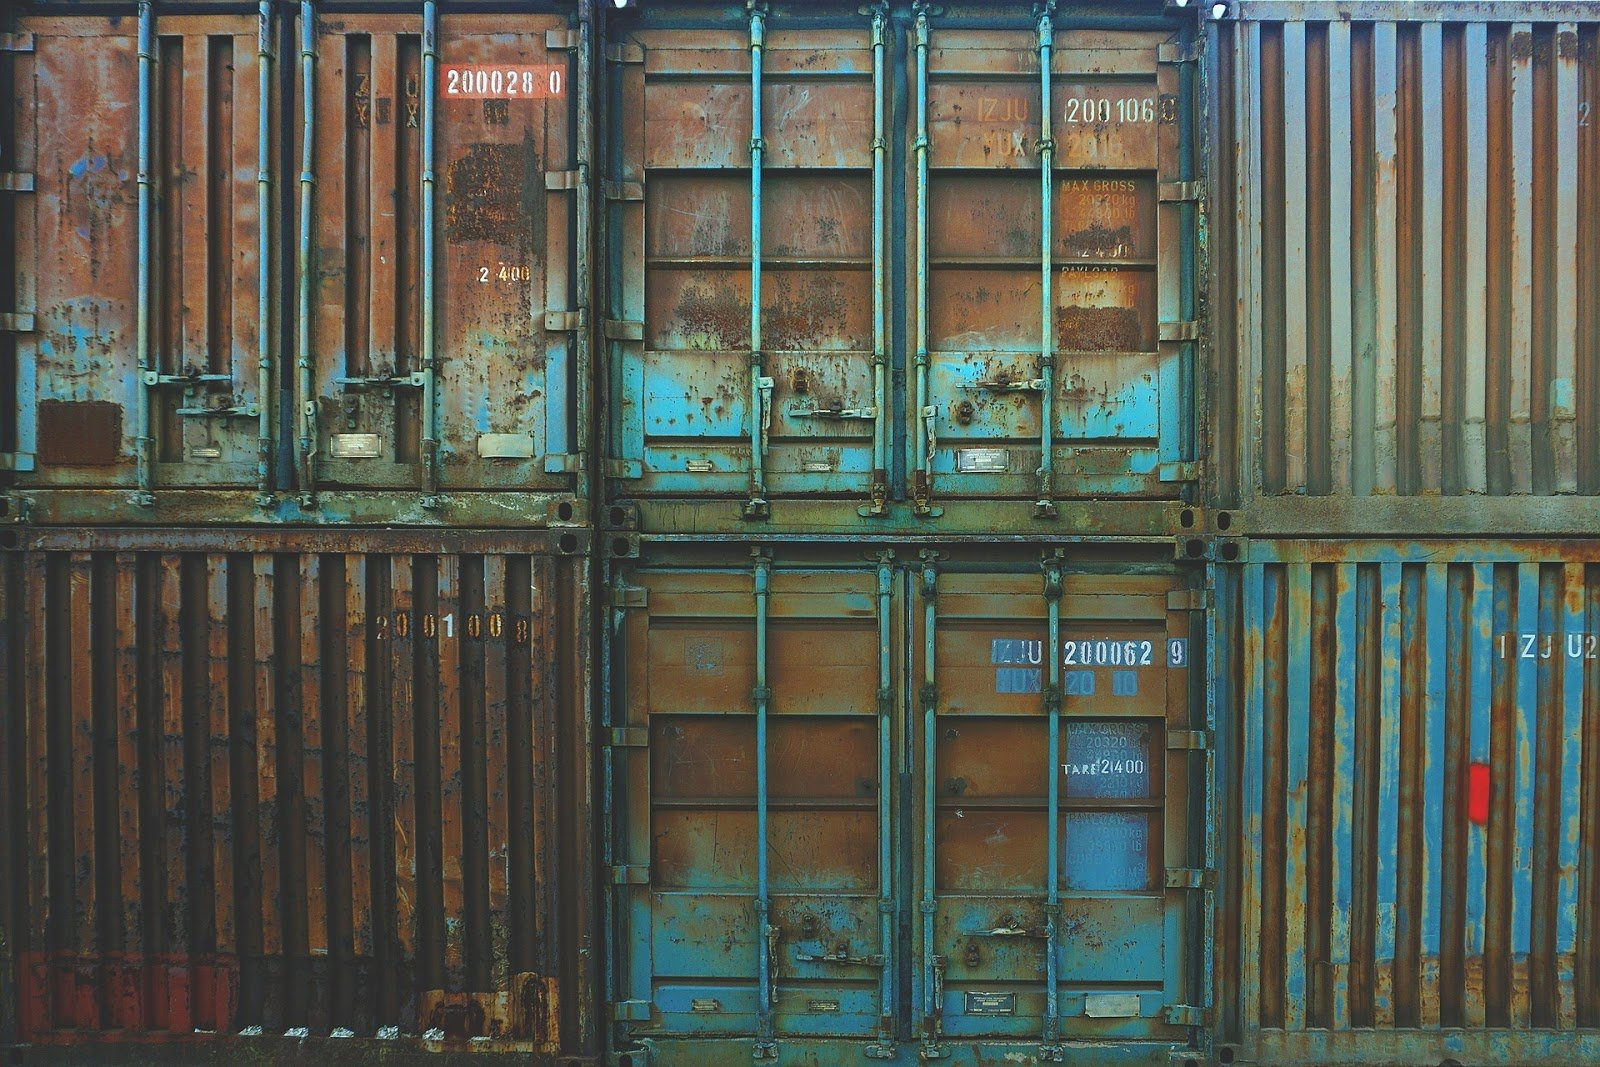 Rusty storage containers